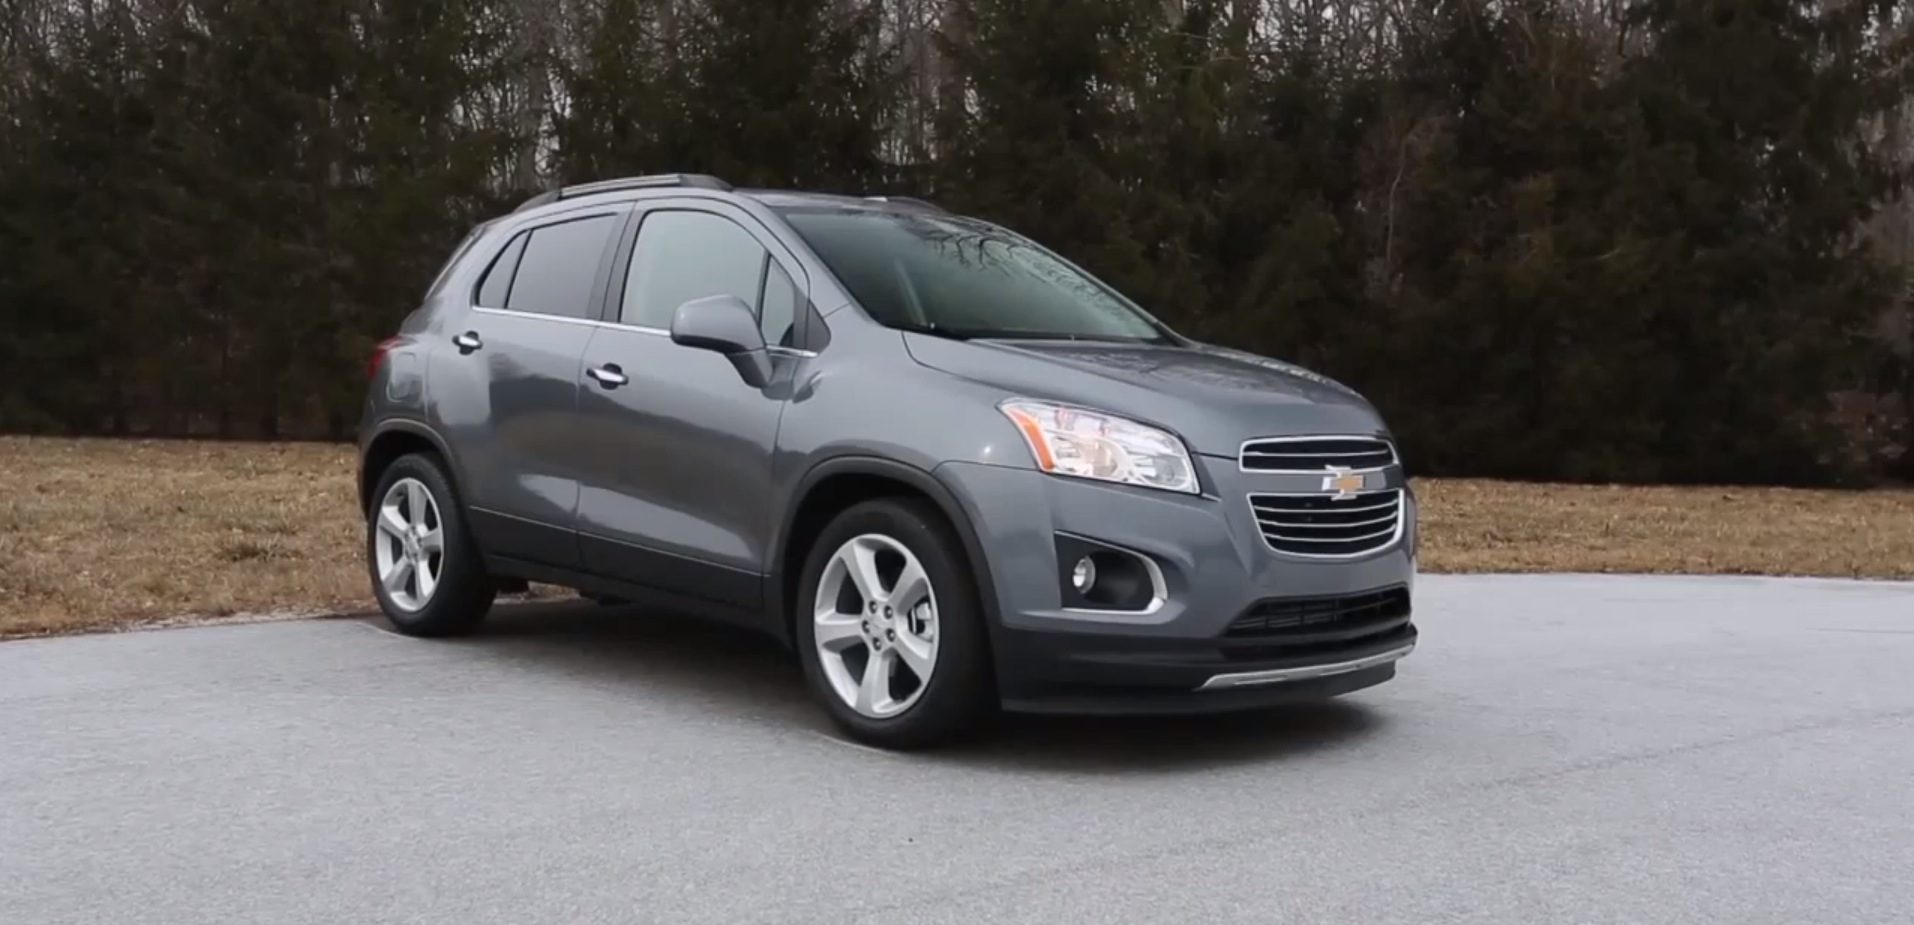 2015 chevy trax criticized by consumer reports for price lack of space autoevolution. Black Bedroom Furniture Sets. Home Design Ideas